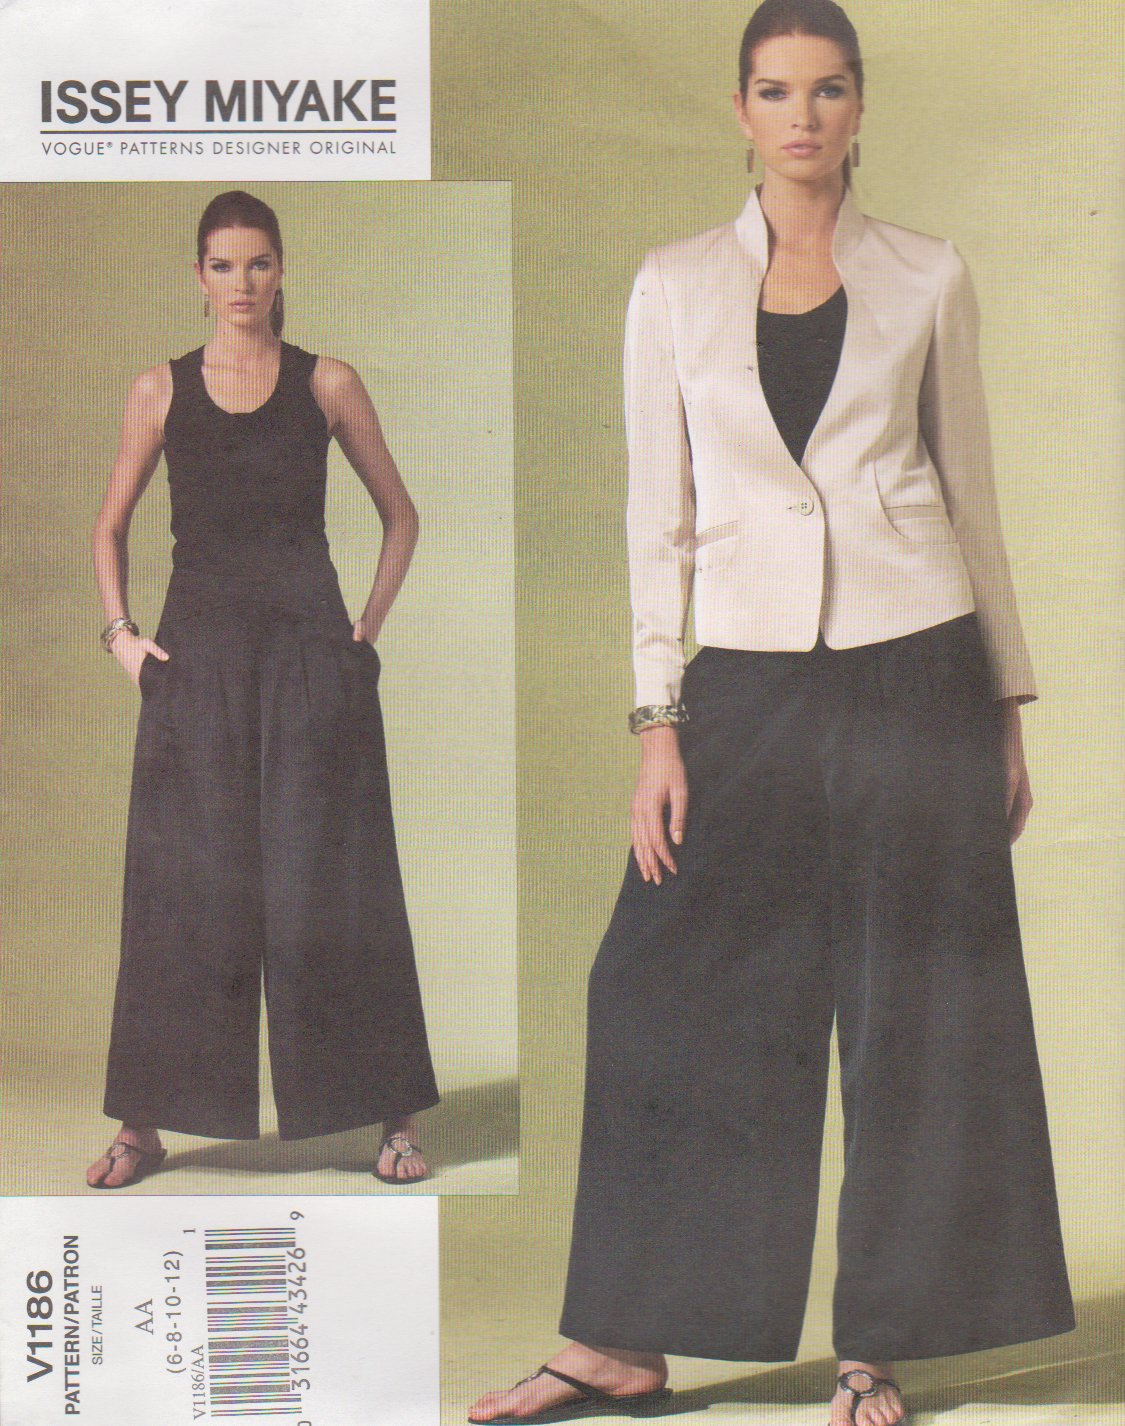 Vogue Sewing Pattern 1186 V1186 Misses Size 6-12 Issey Miyake Lined Jacket Flared Pants